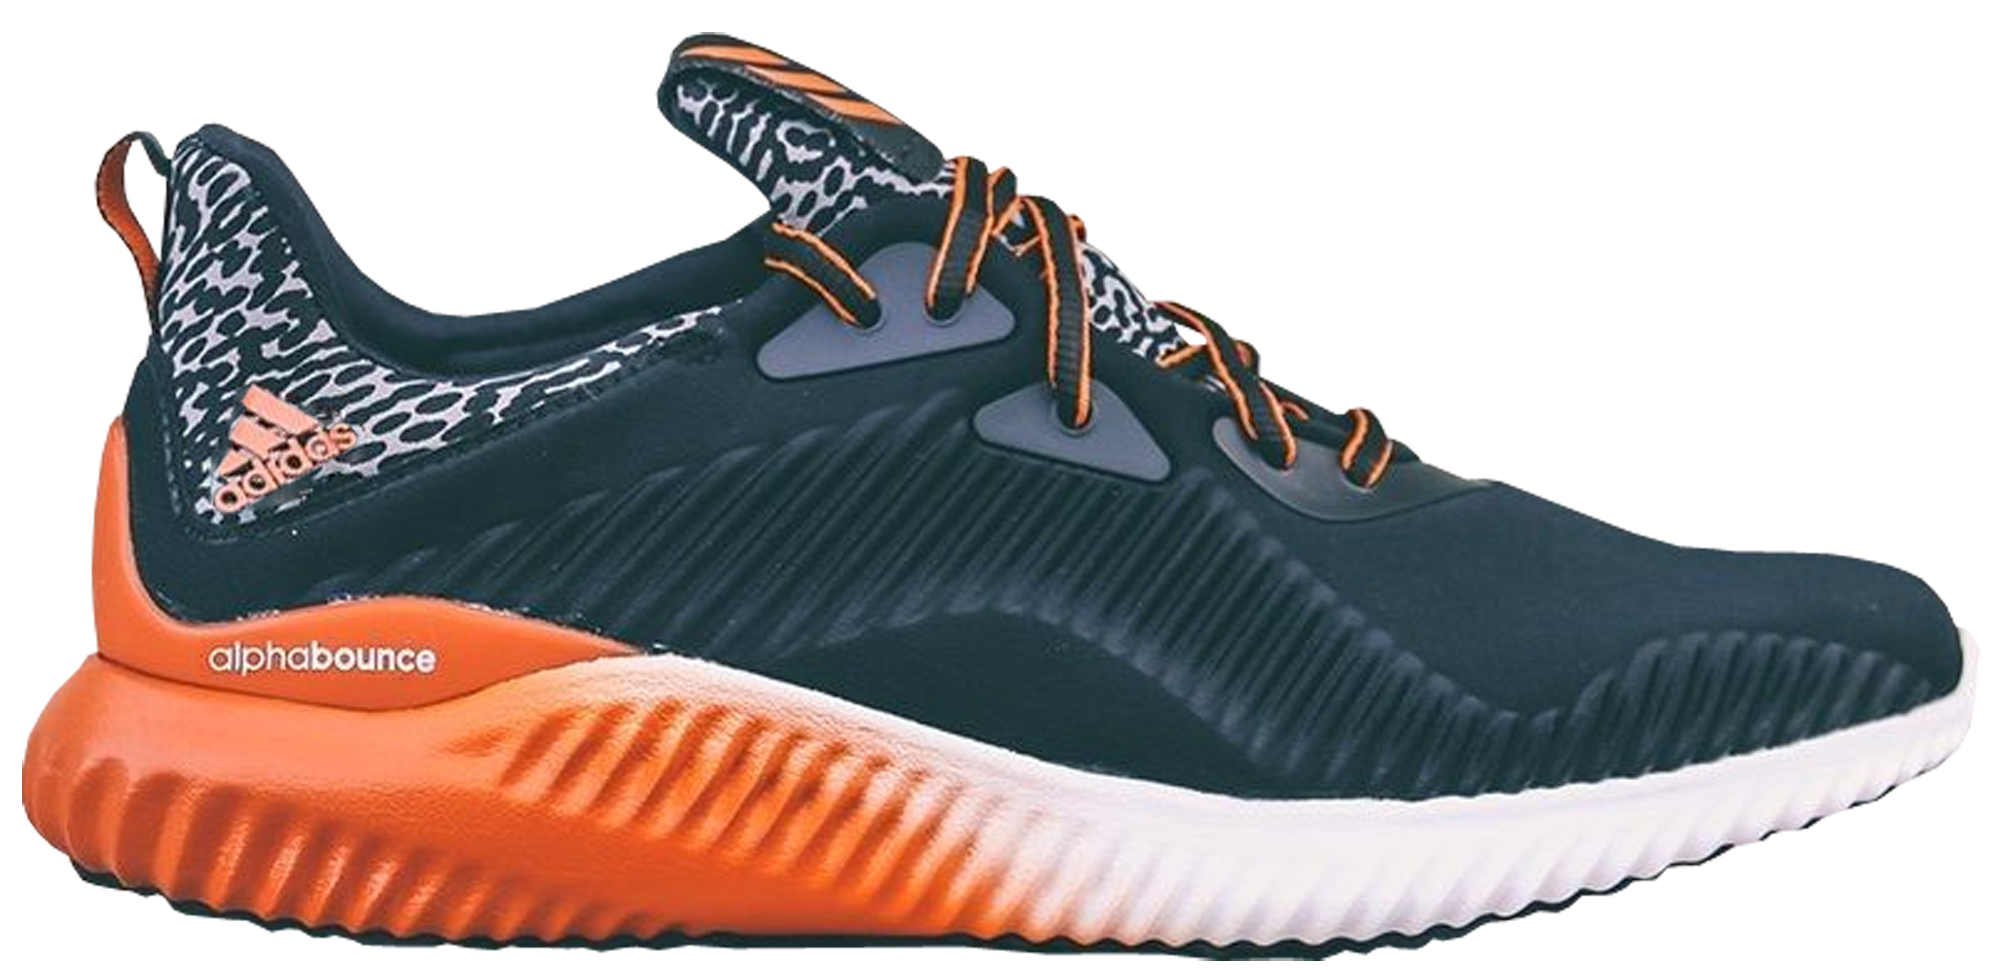 Adidas AlphaBounce Miami Hurricanes PE College Bowl Pack 2016